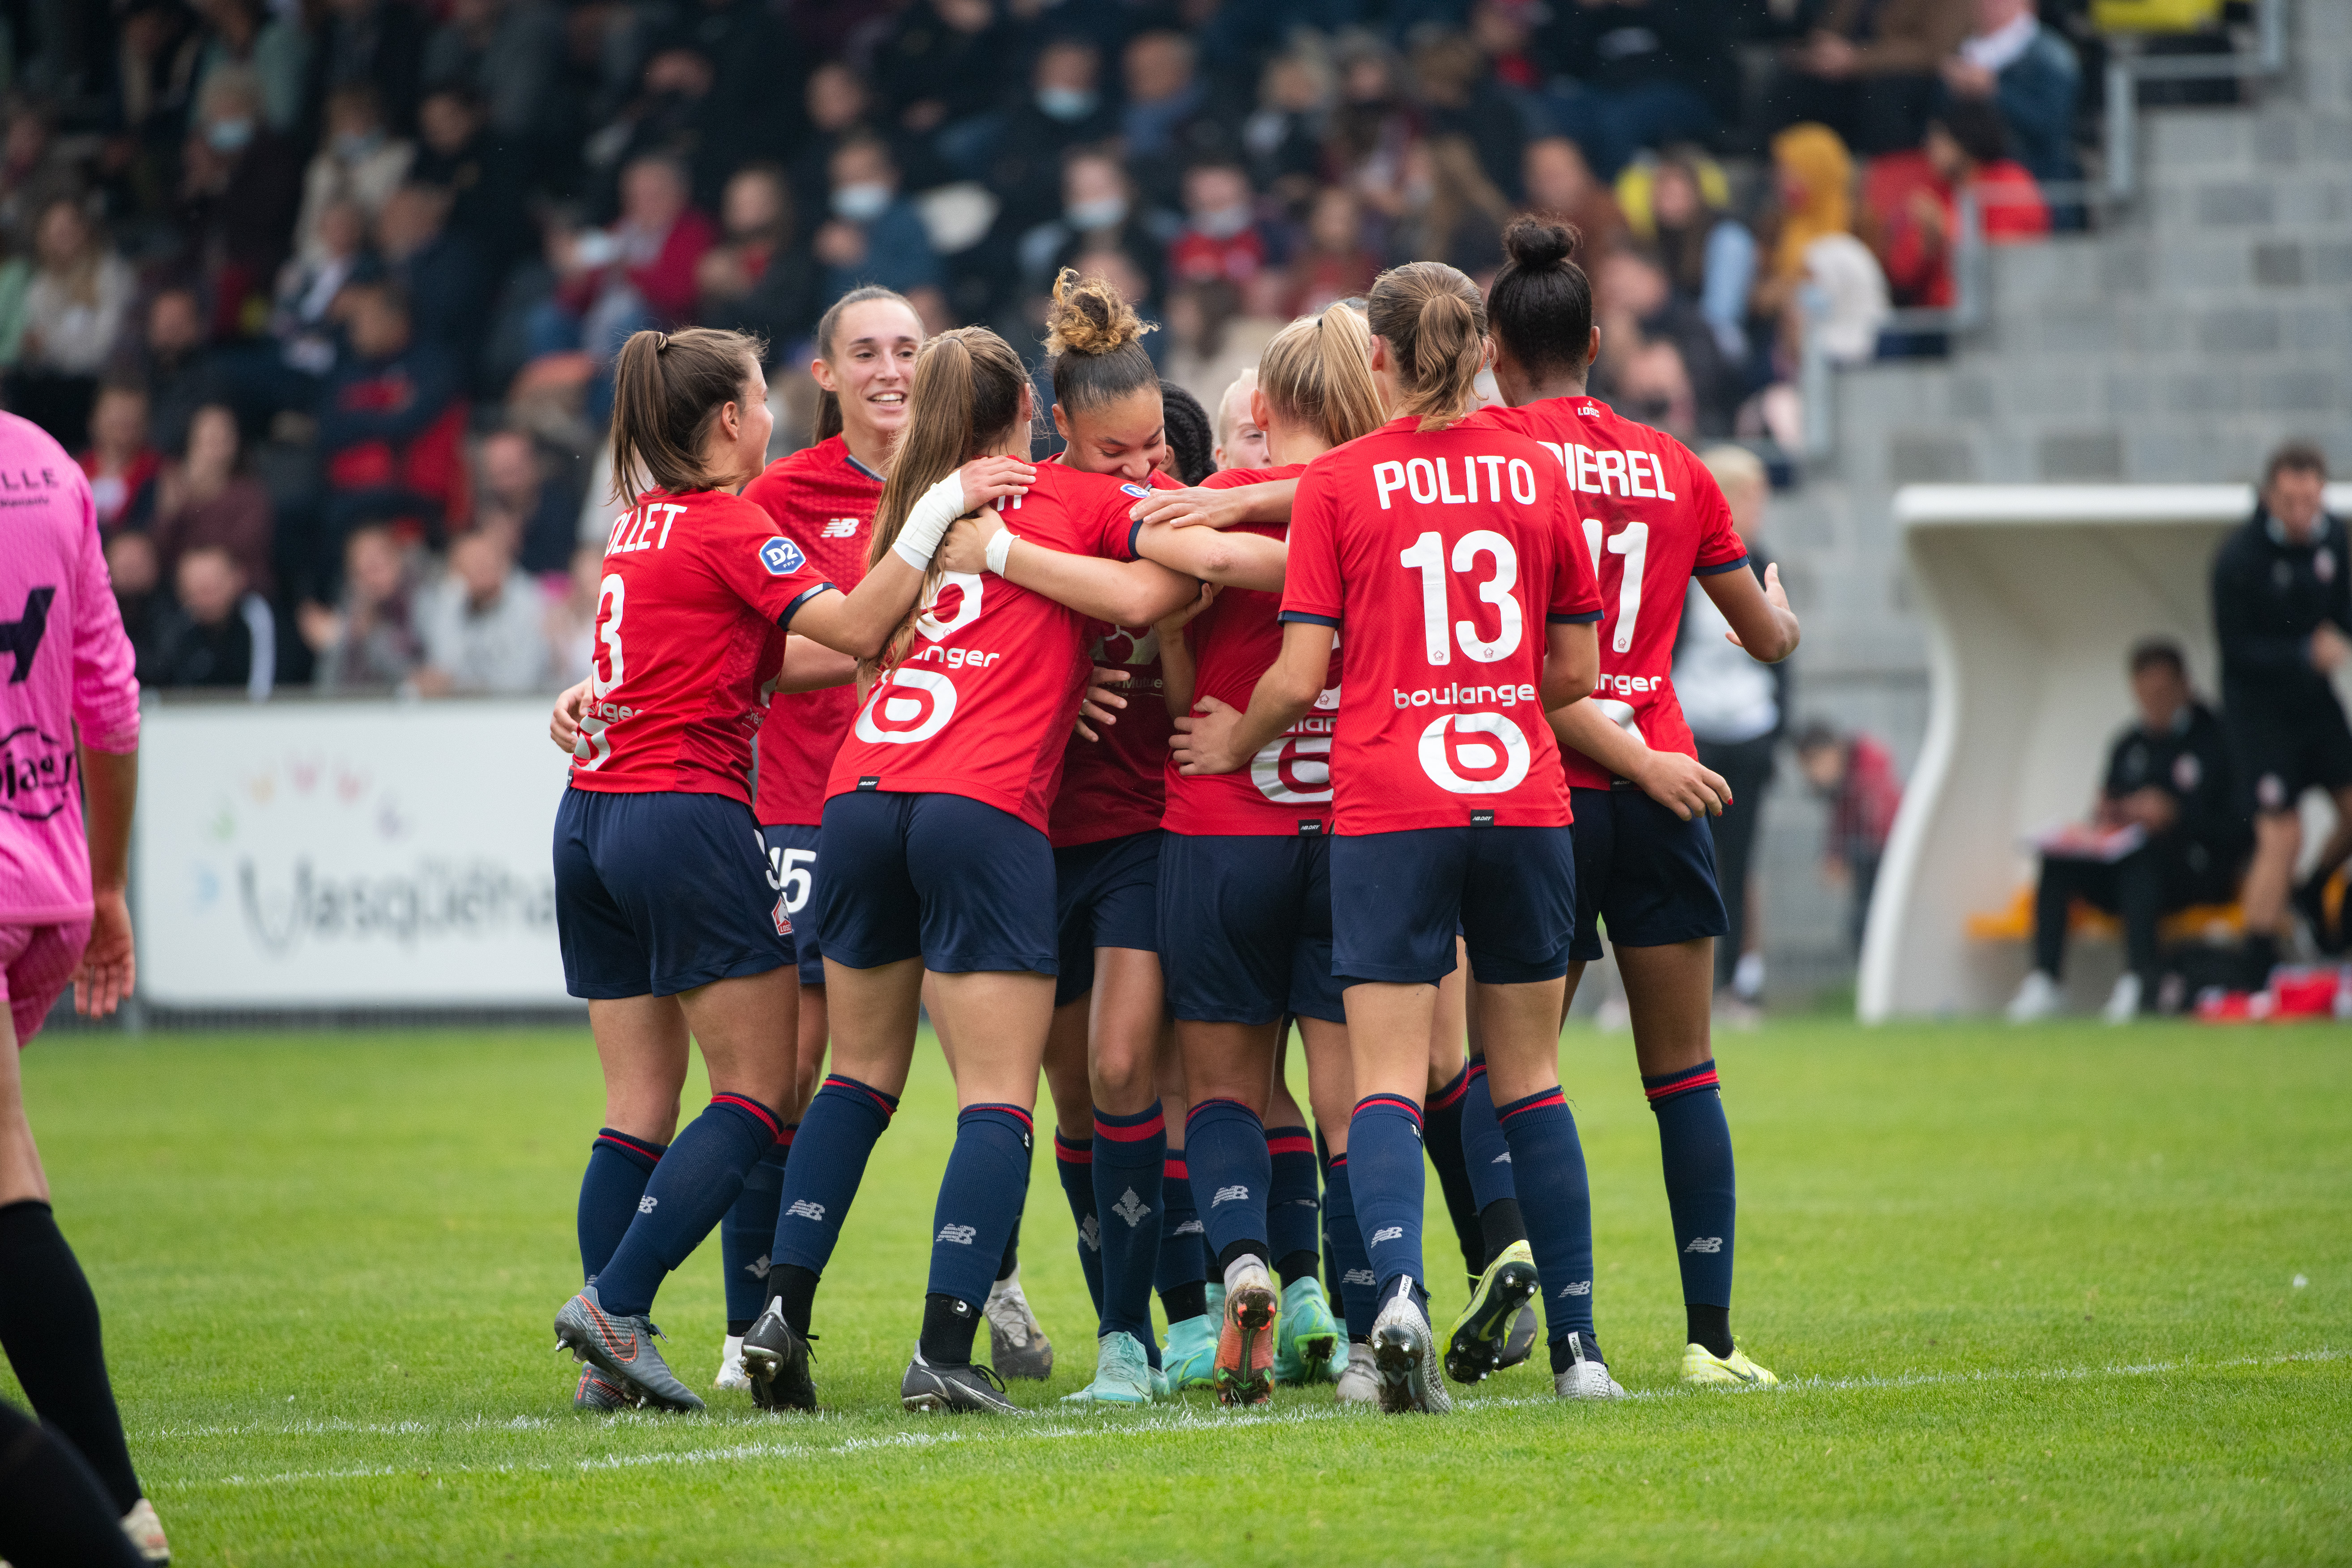 FC Nantes – LOSC on show this Sunday for our girls